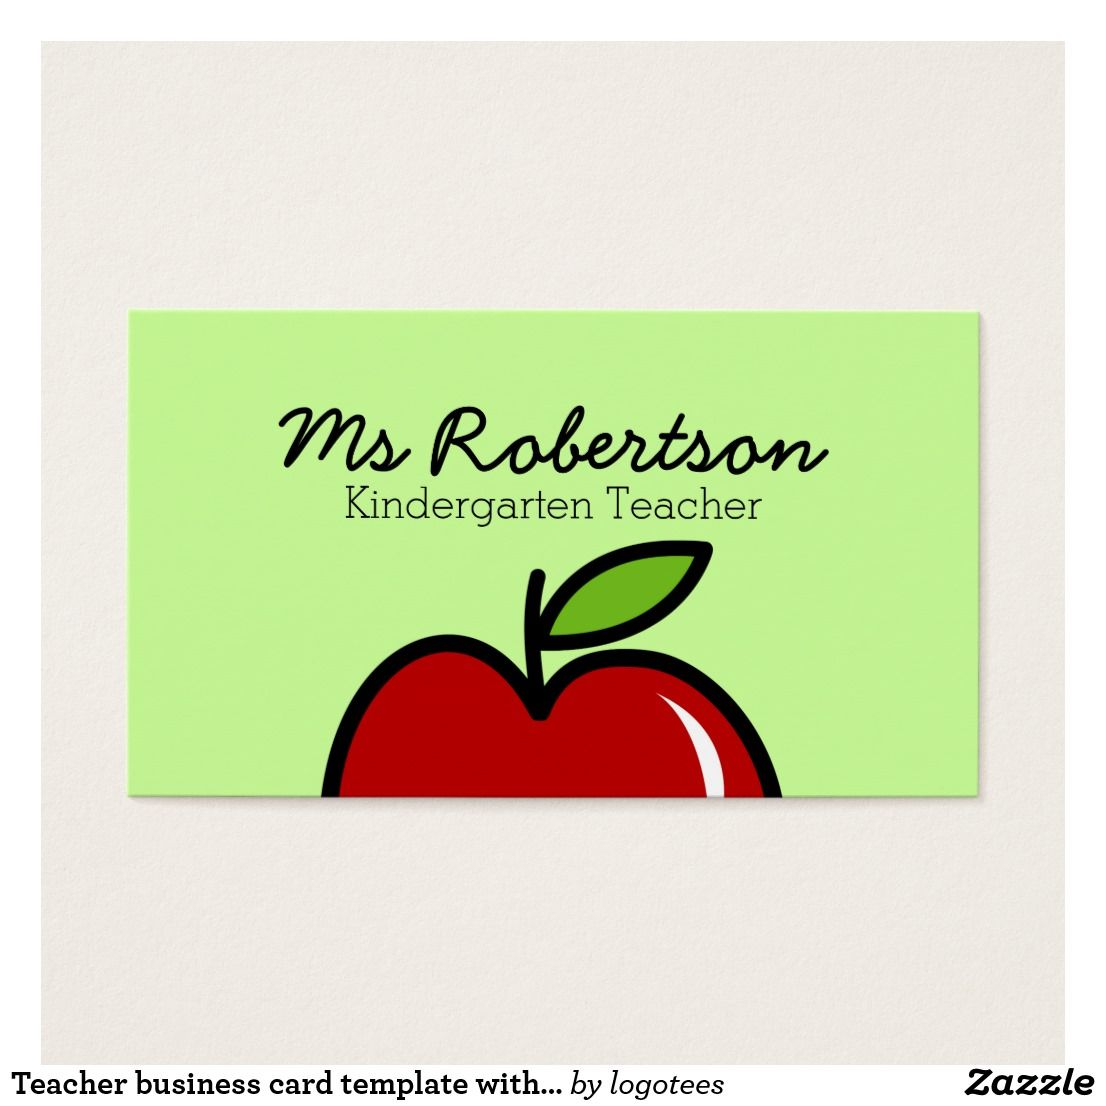 Teacher business card template with red apple teacher business teacher business card template with red apple cheaphphosting Image collections